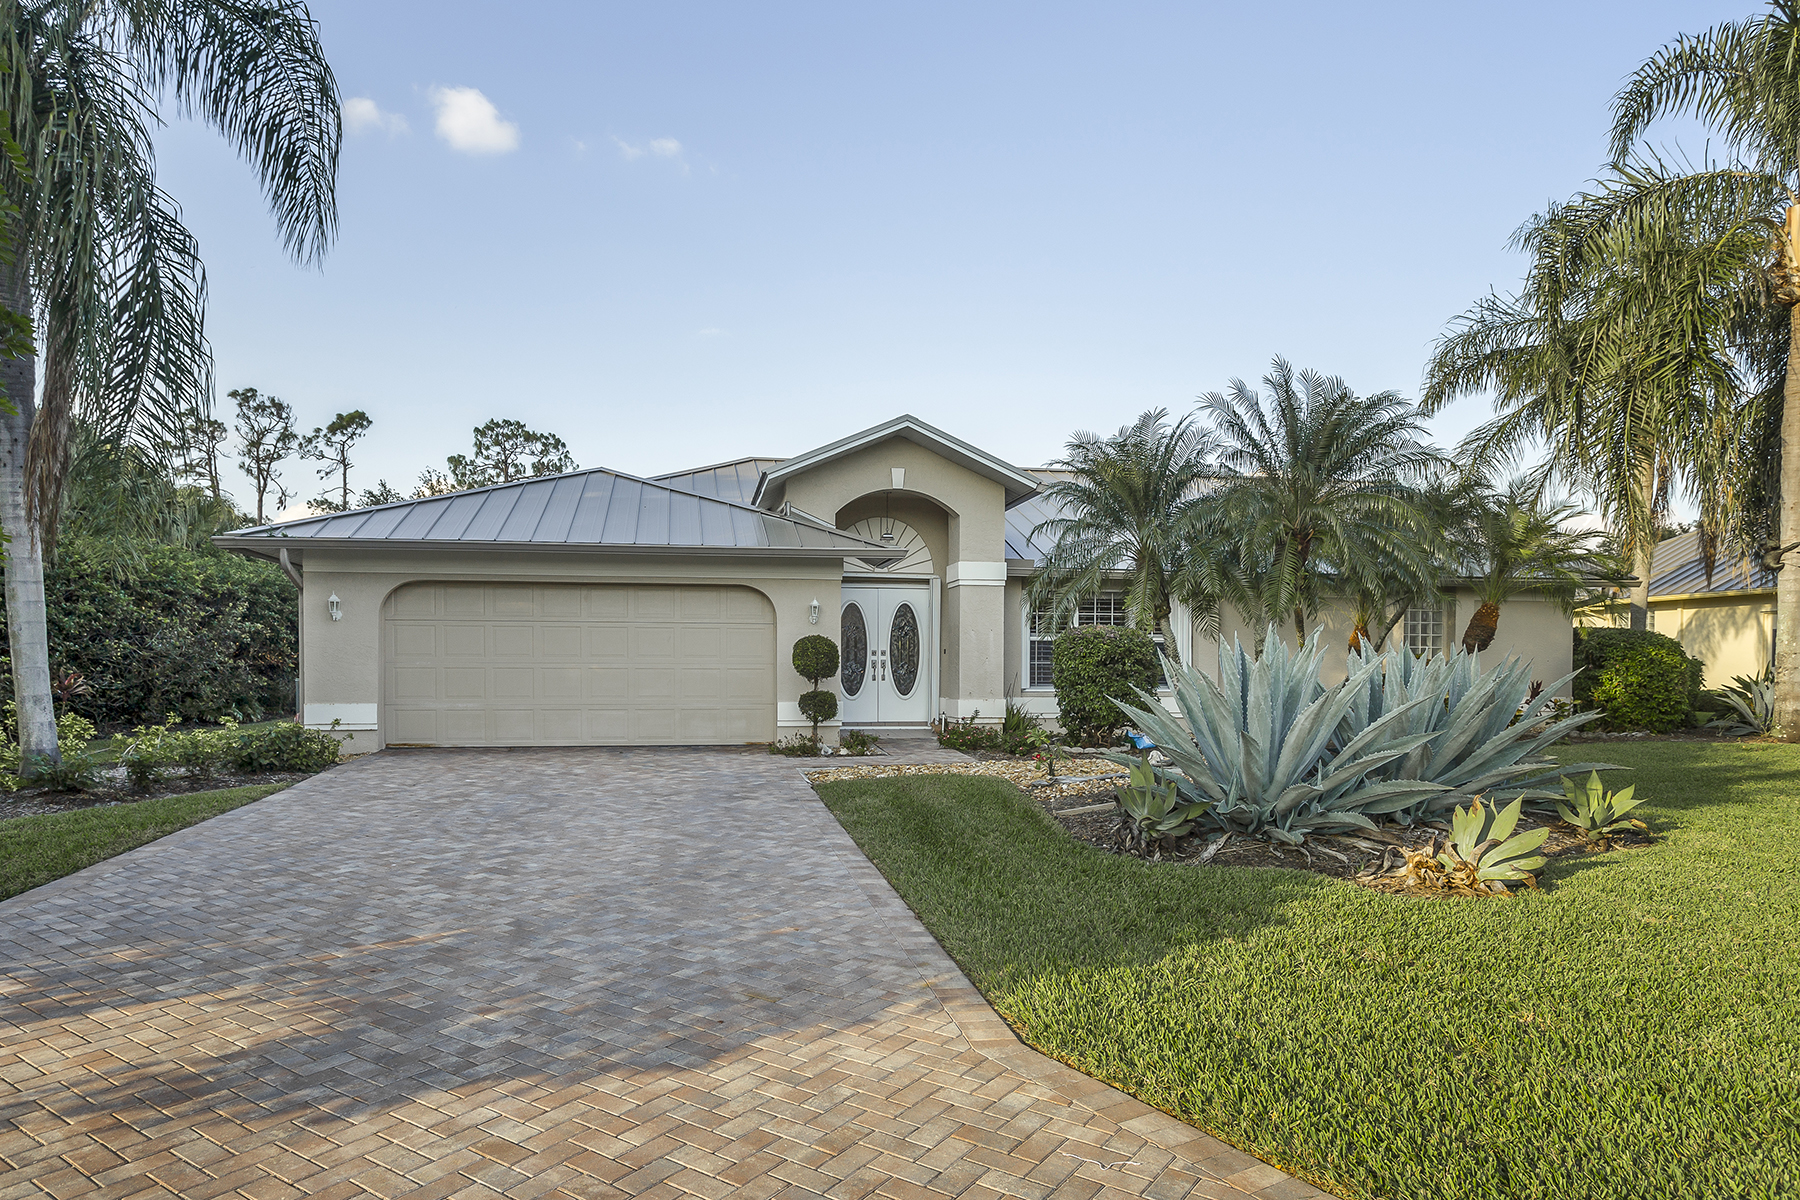 Single Family Home for Sale at 2025 Castle Garden Ln , Naples, FL 34110 2025 Castle Garden Ln, Naples, Florida 34110 United States